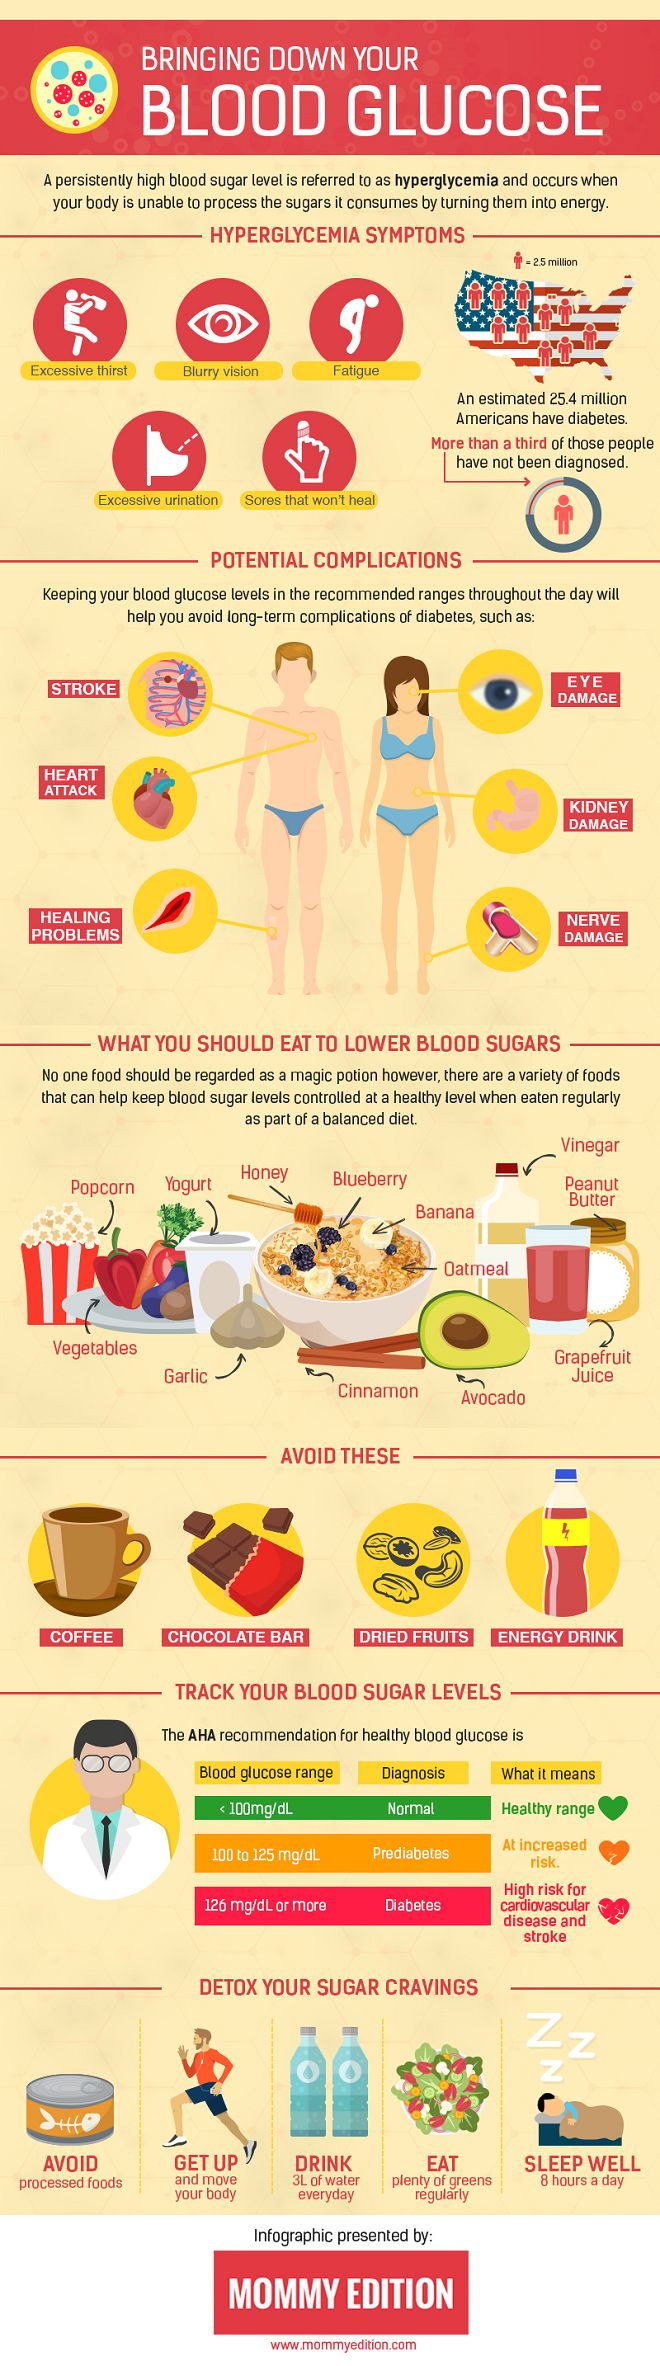 Lowering Blood Glucose